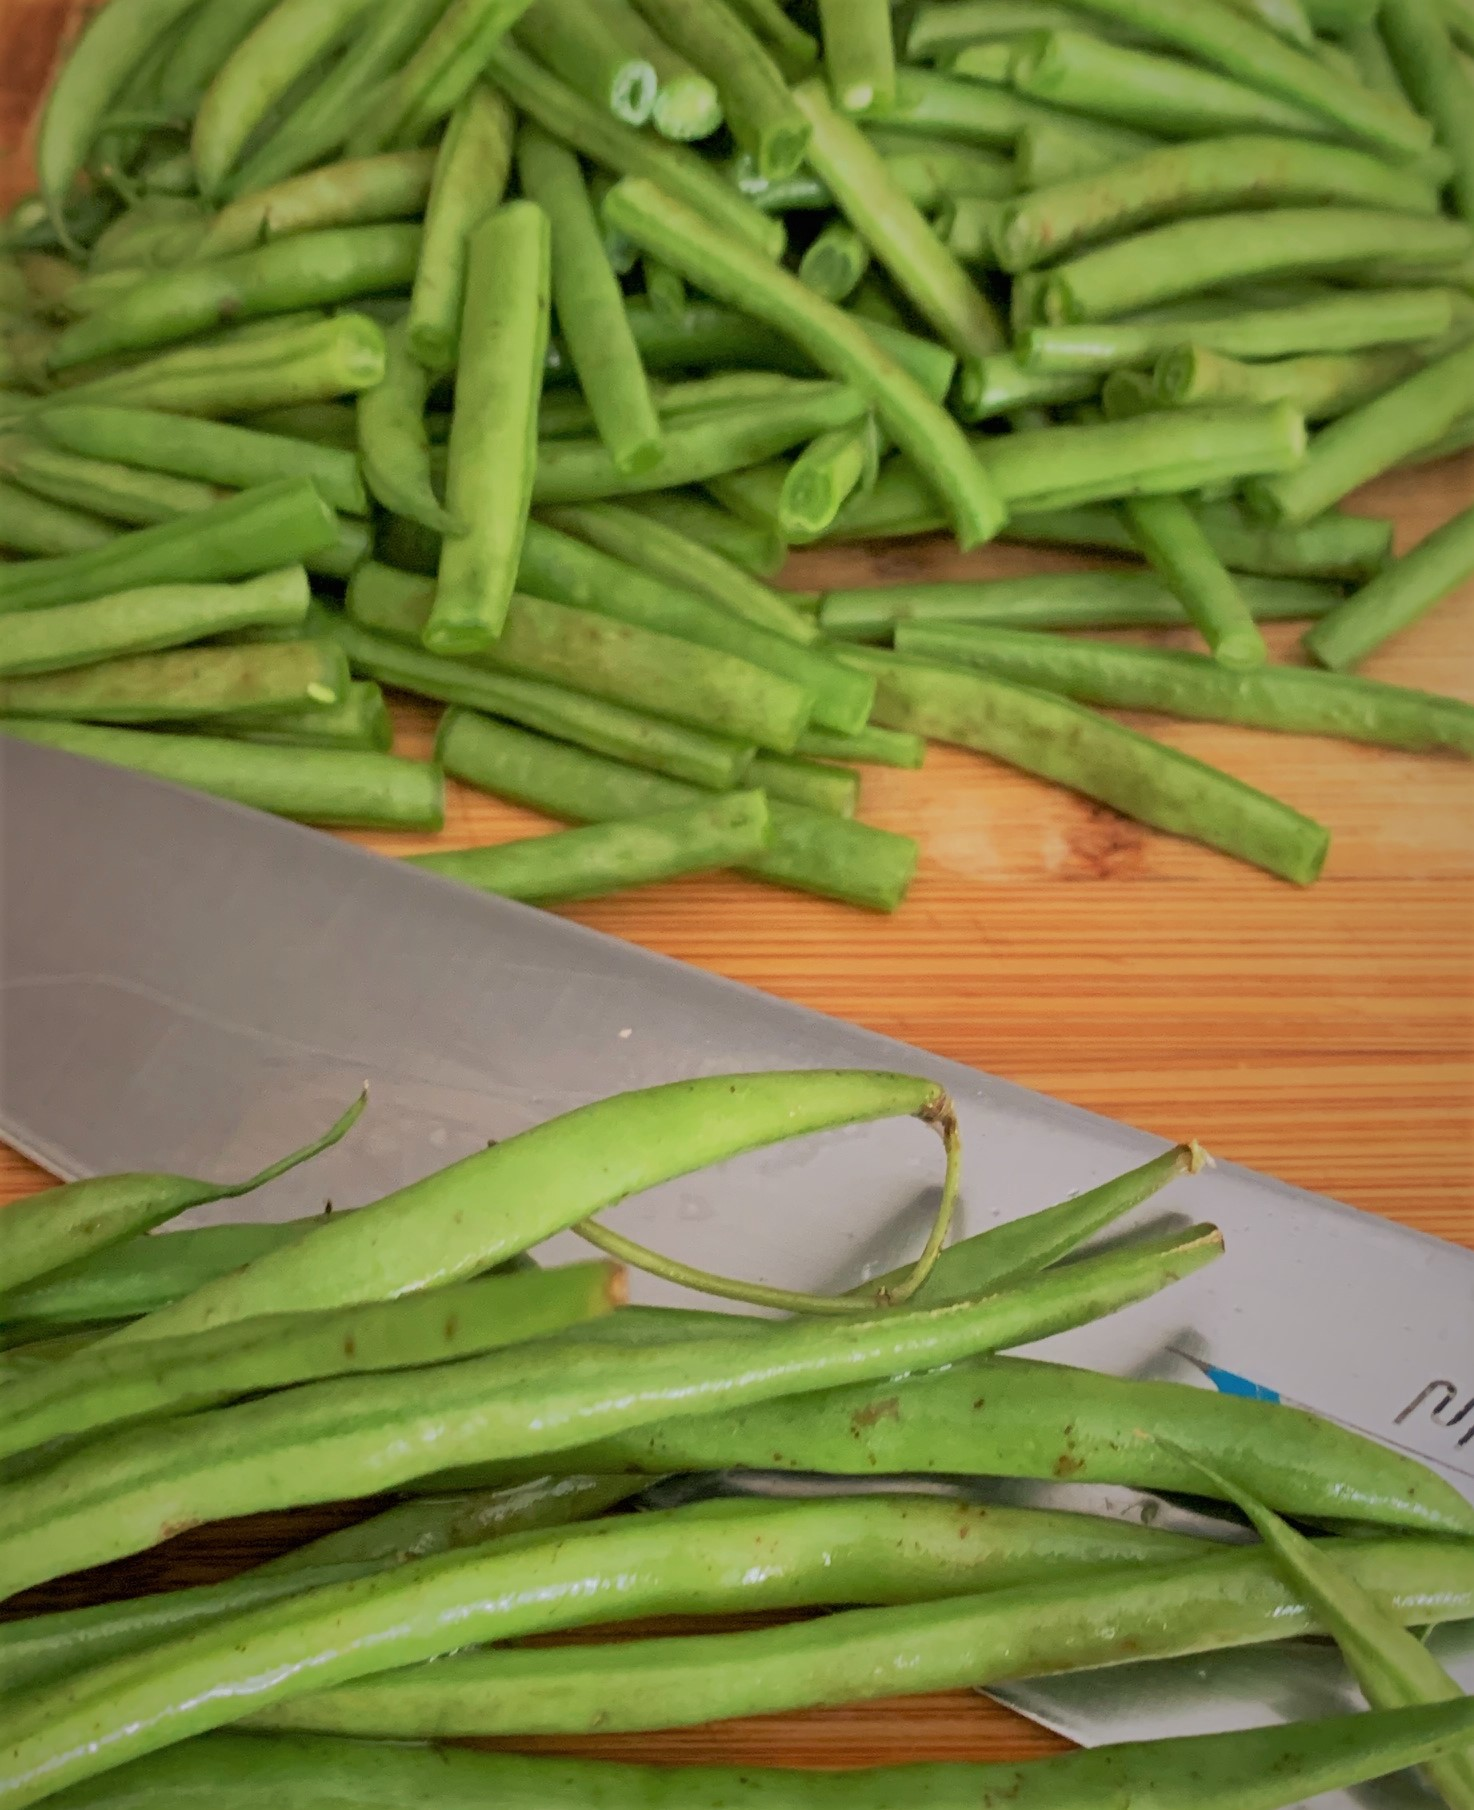 Our cut green beans